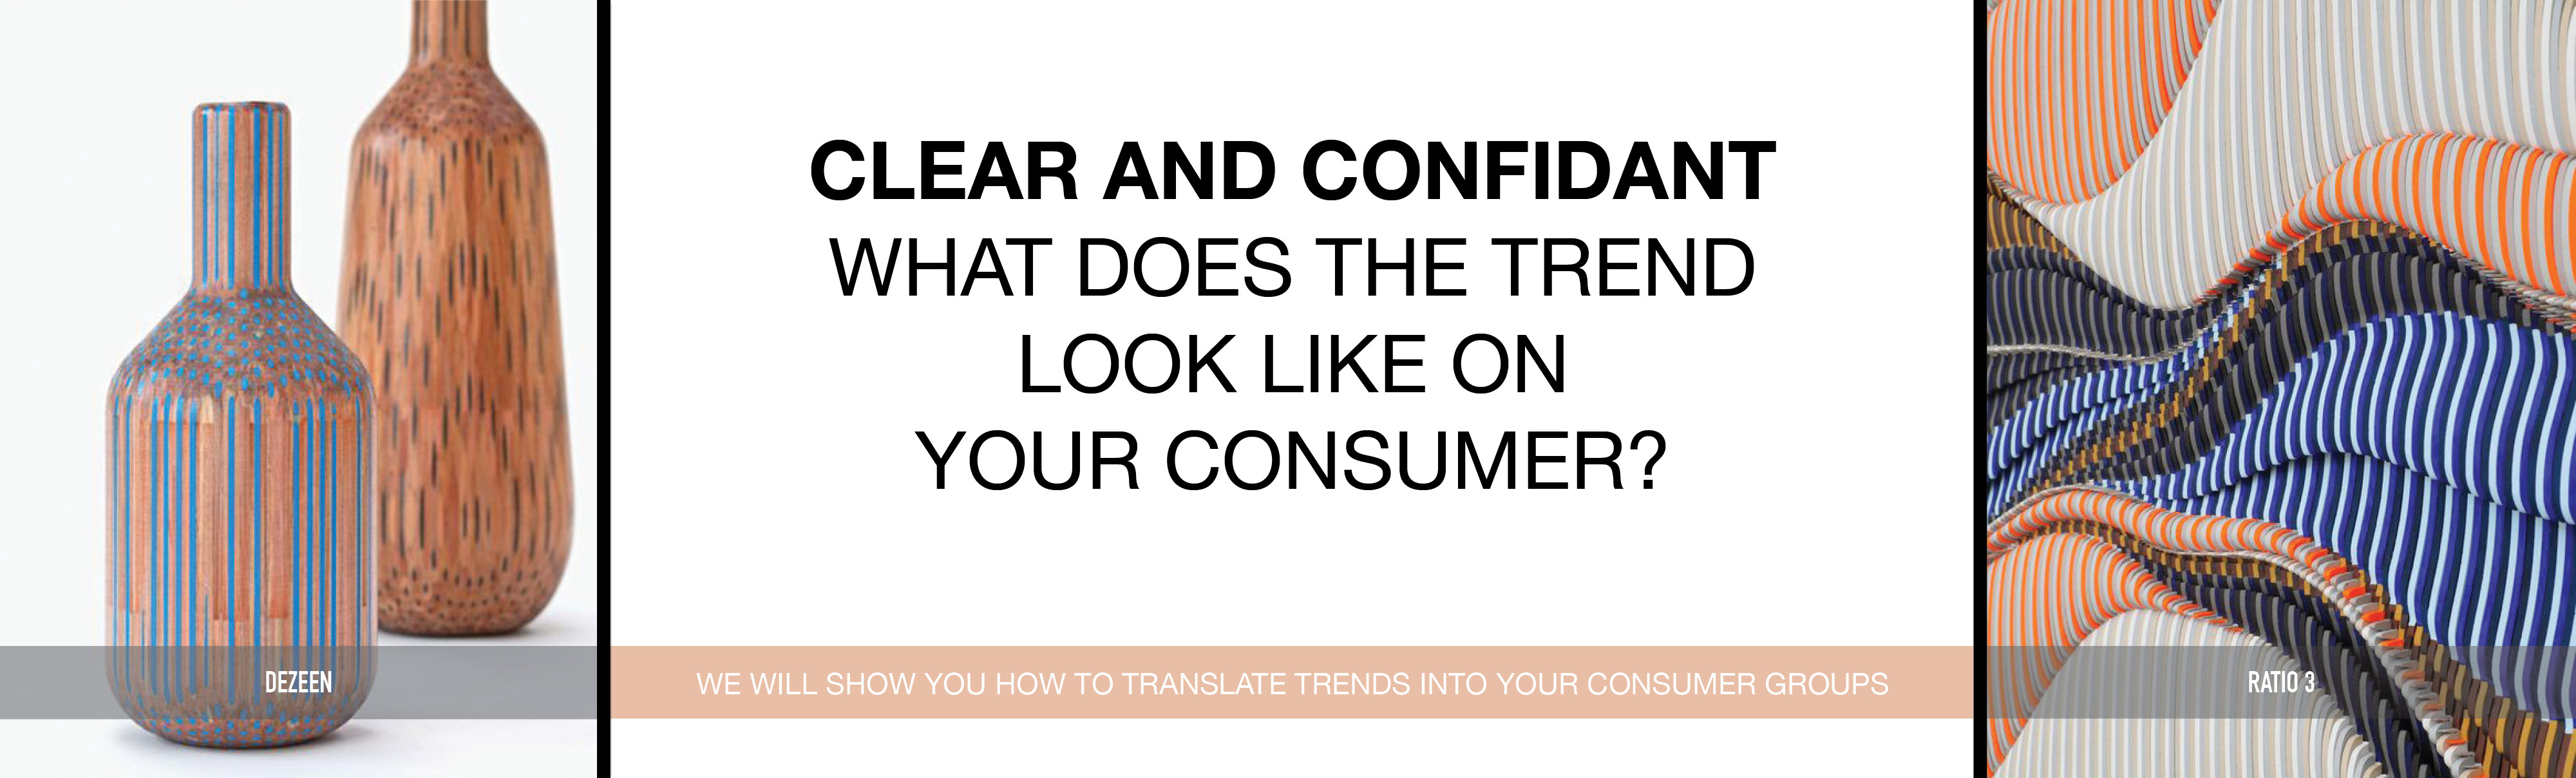 Clear and confident - What does the trend look like on your consumer?